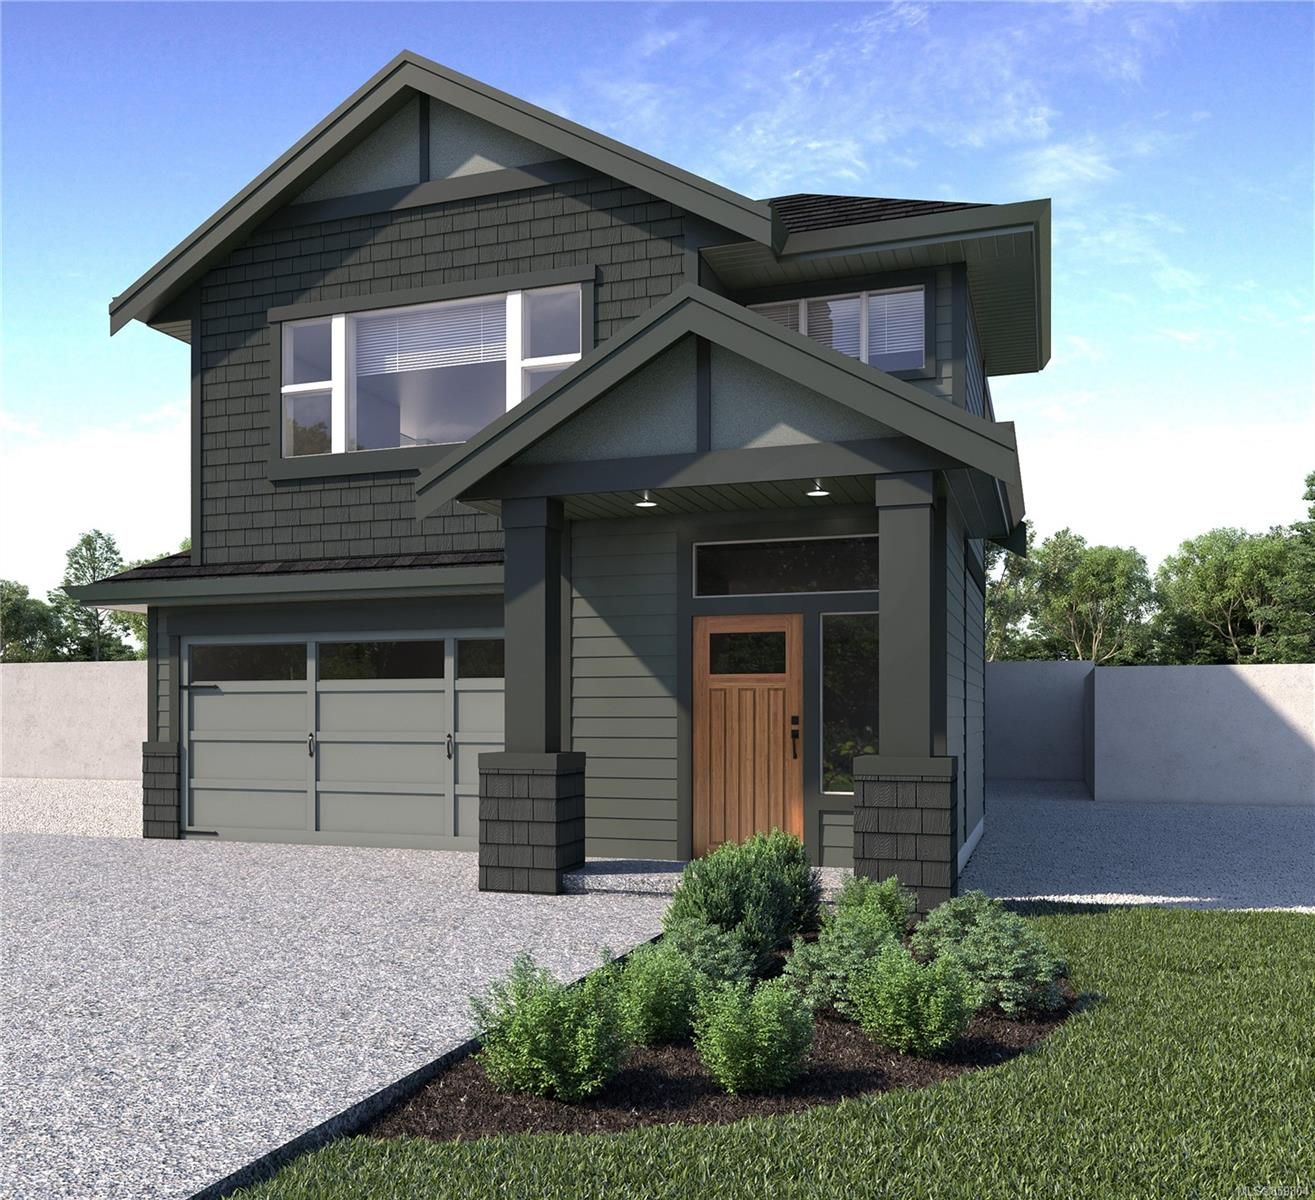 Rendering not of exact home, but one of similar quality and construction